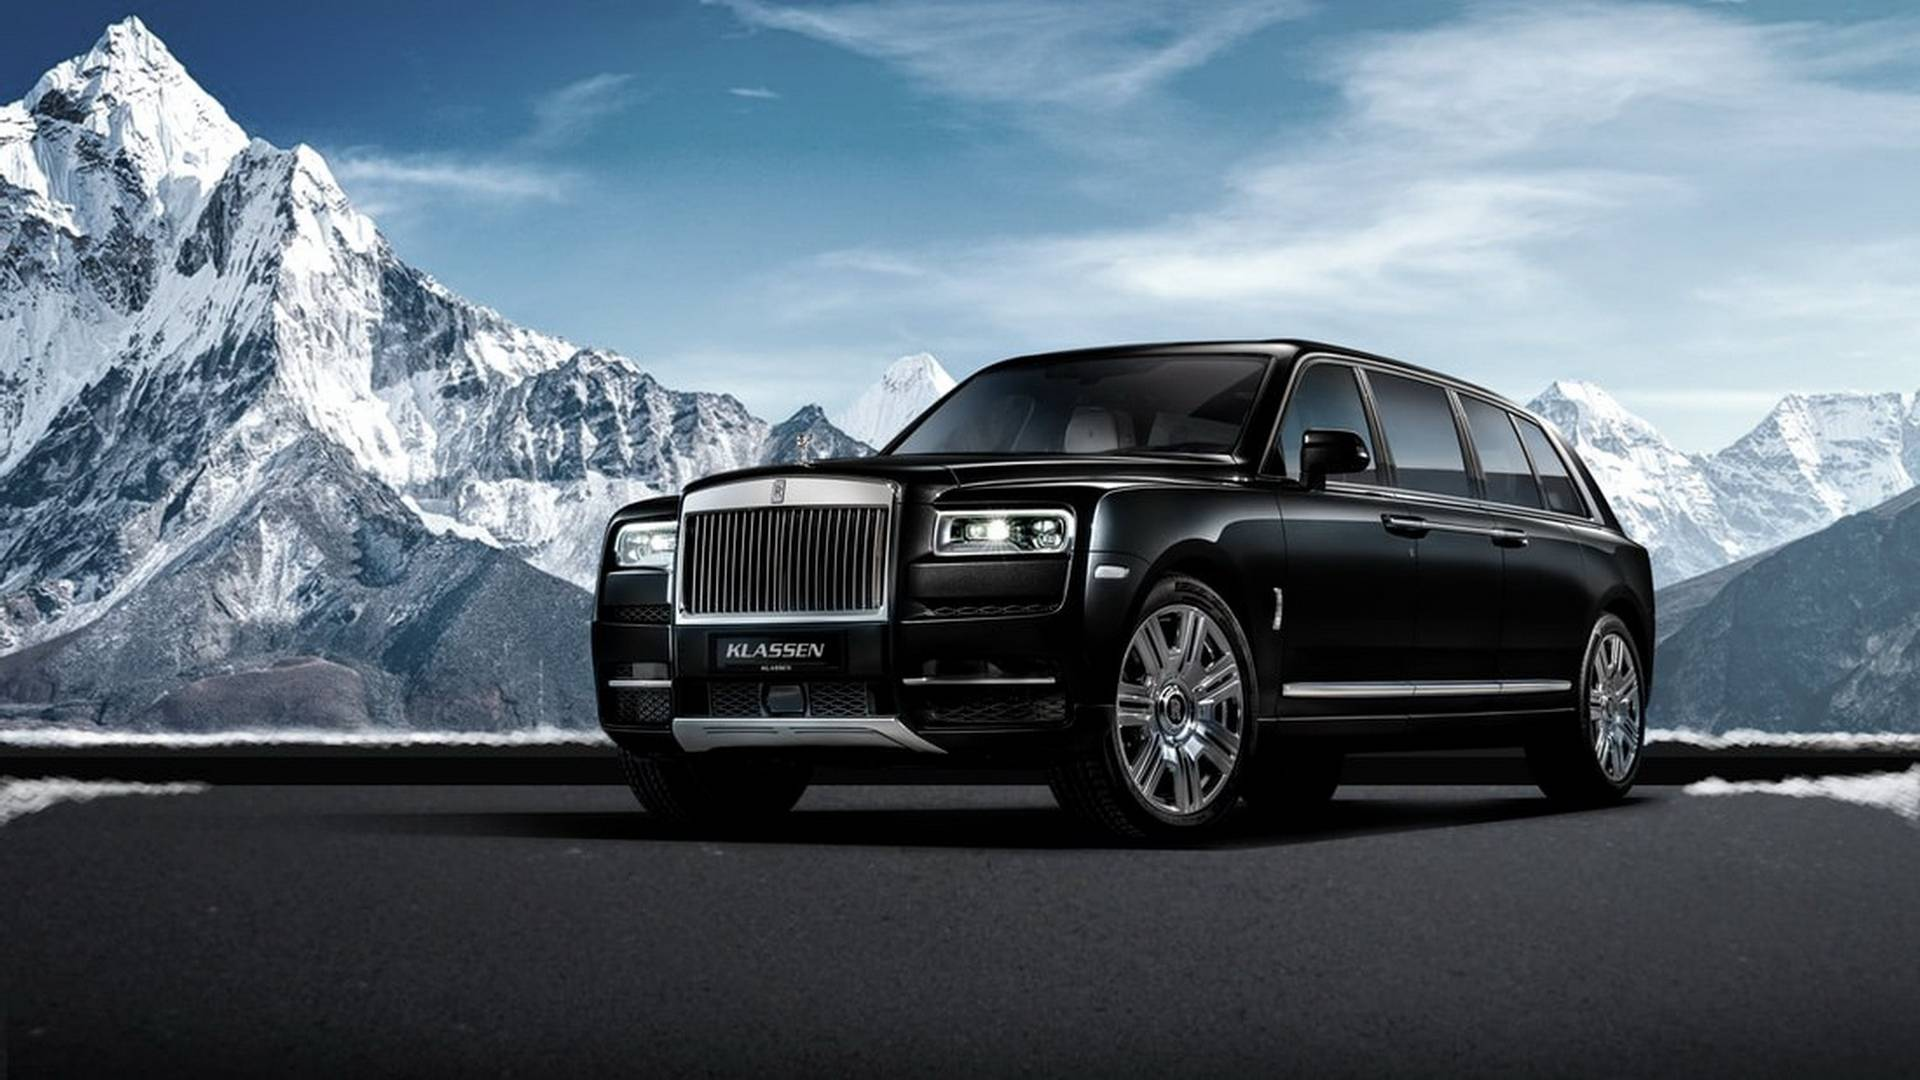 Rolls Royce Limo >> Rolls Royce Cullinan Suv Turned Into An Armored Limousine